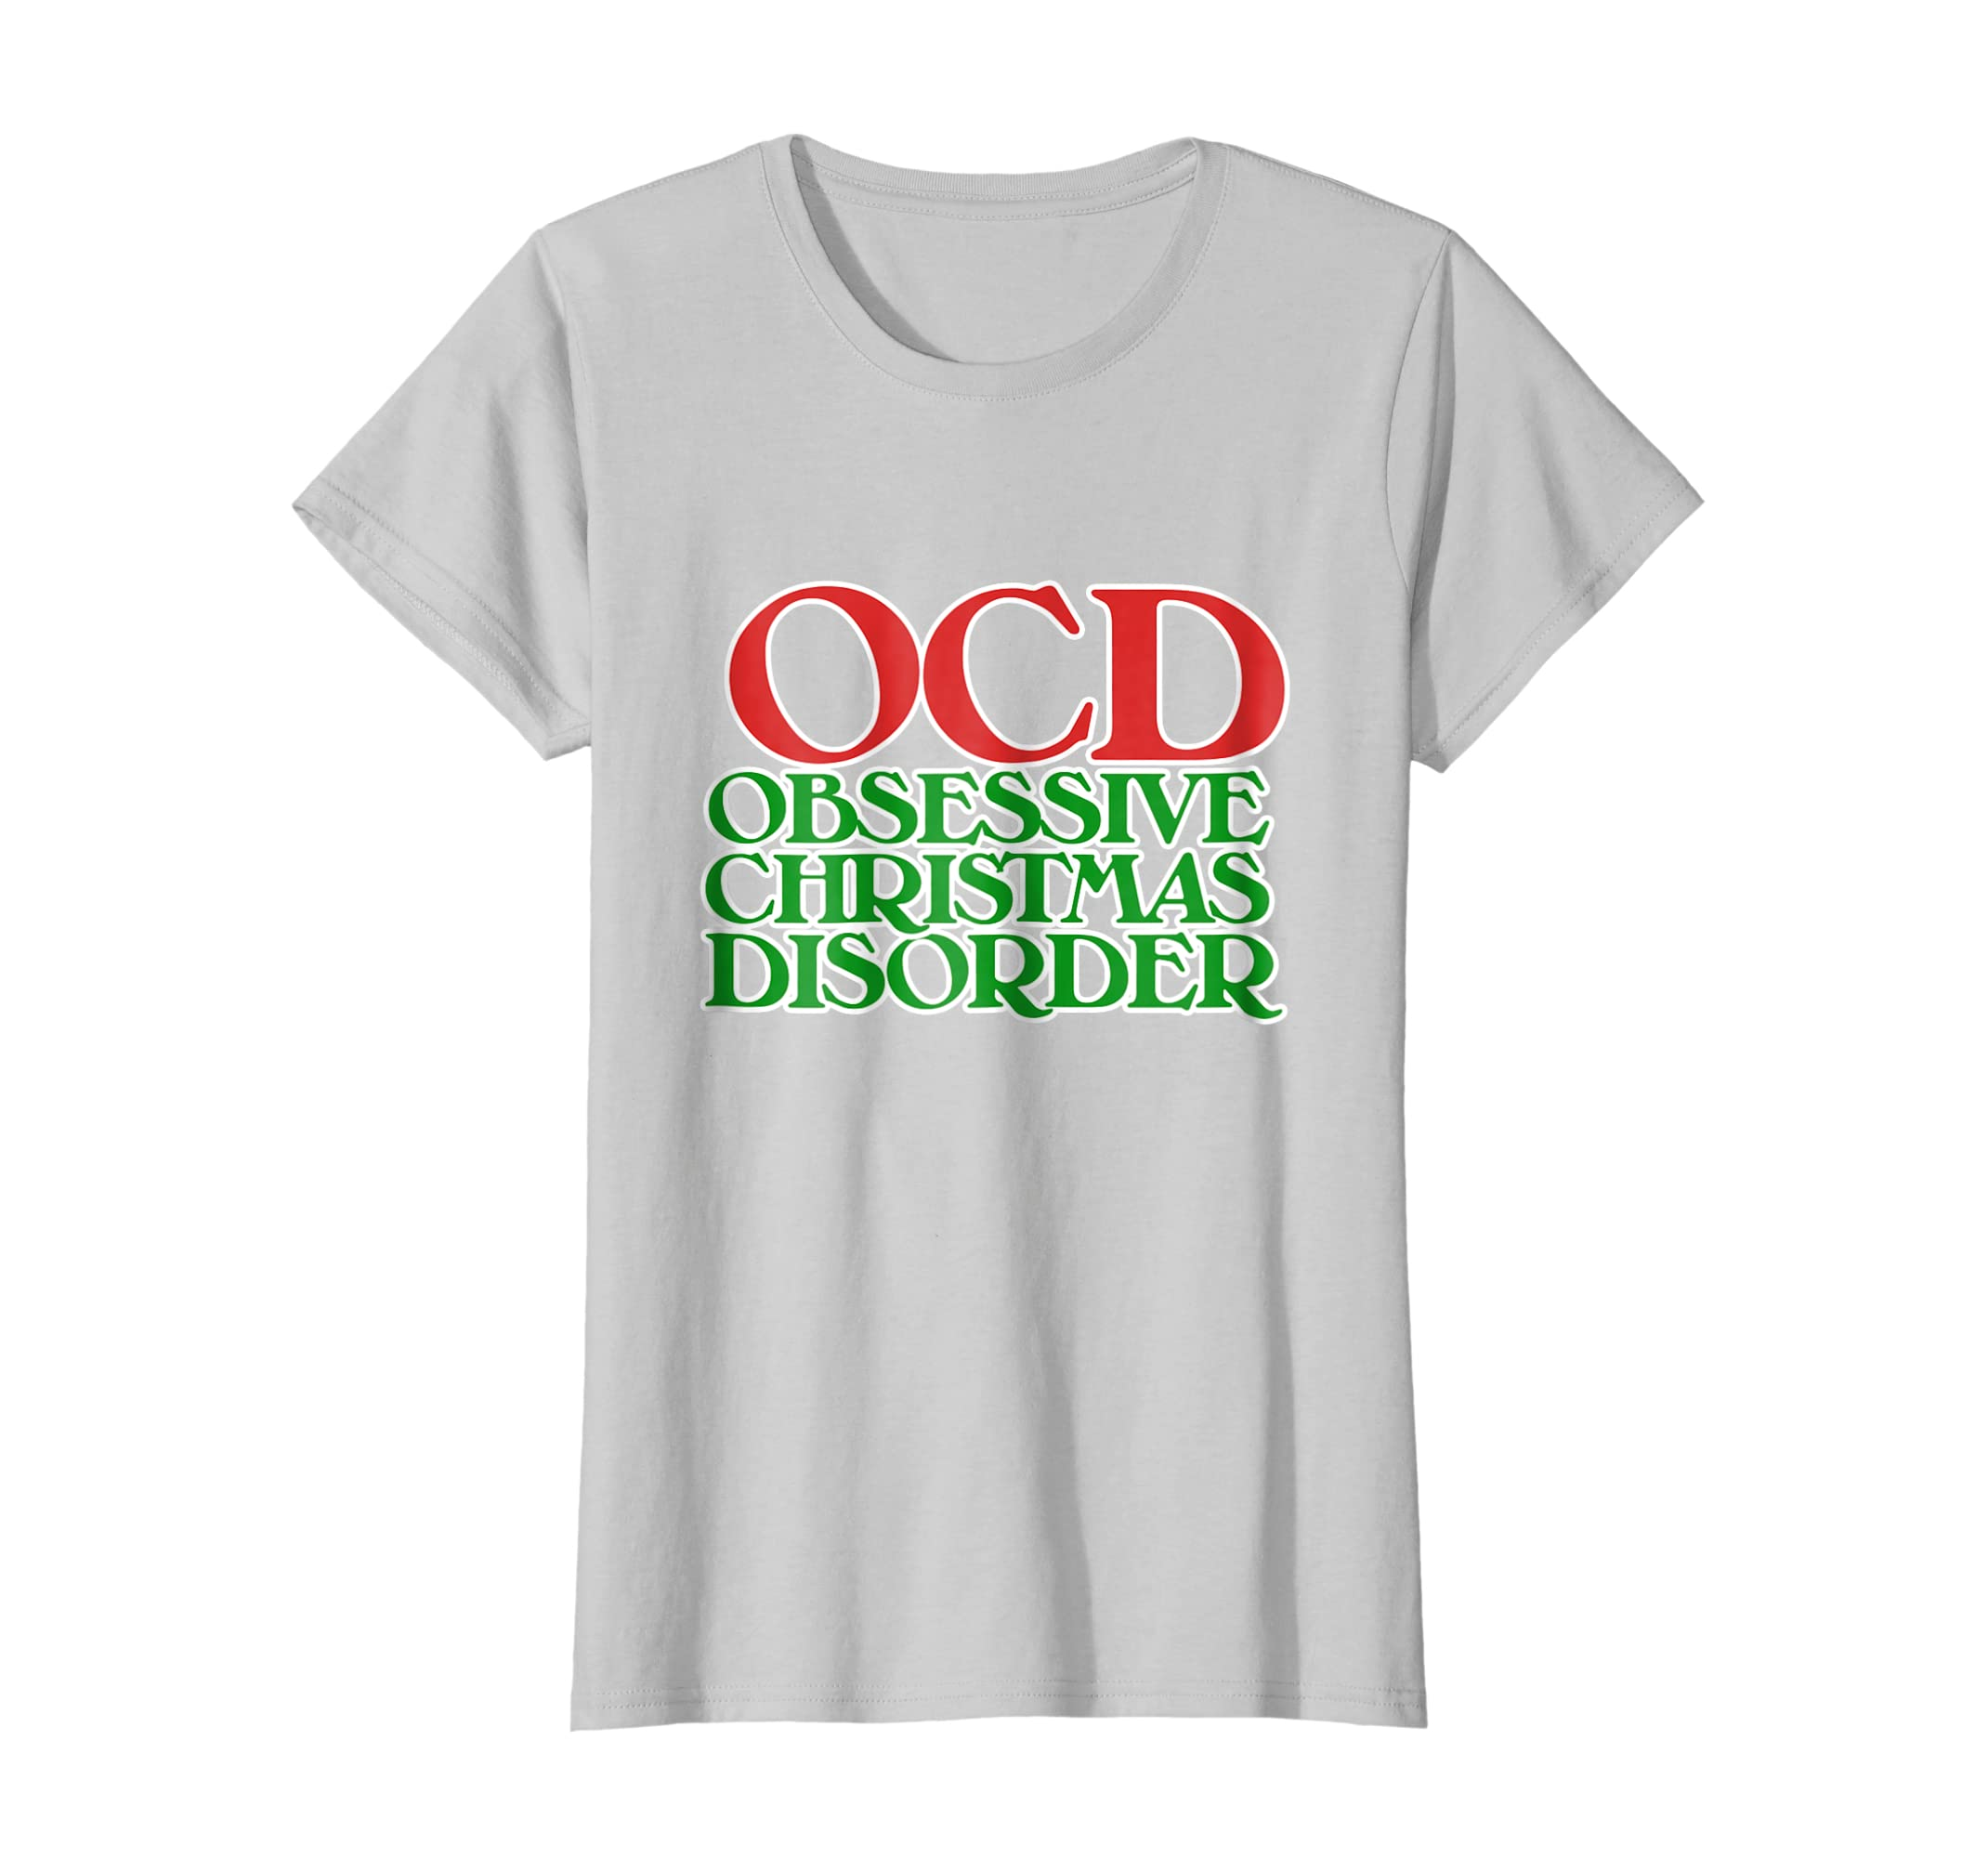 Amazon.com: OCD Obsessive Christmas disorder shirt Christmas t-shirt ...